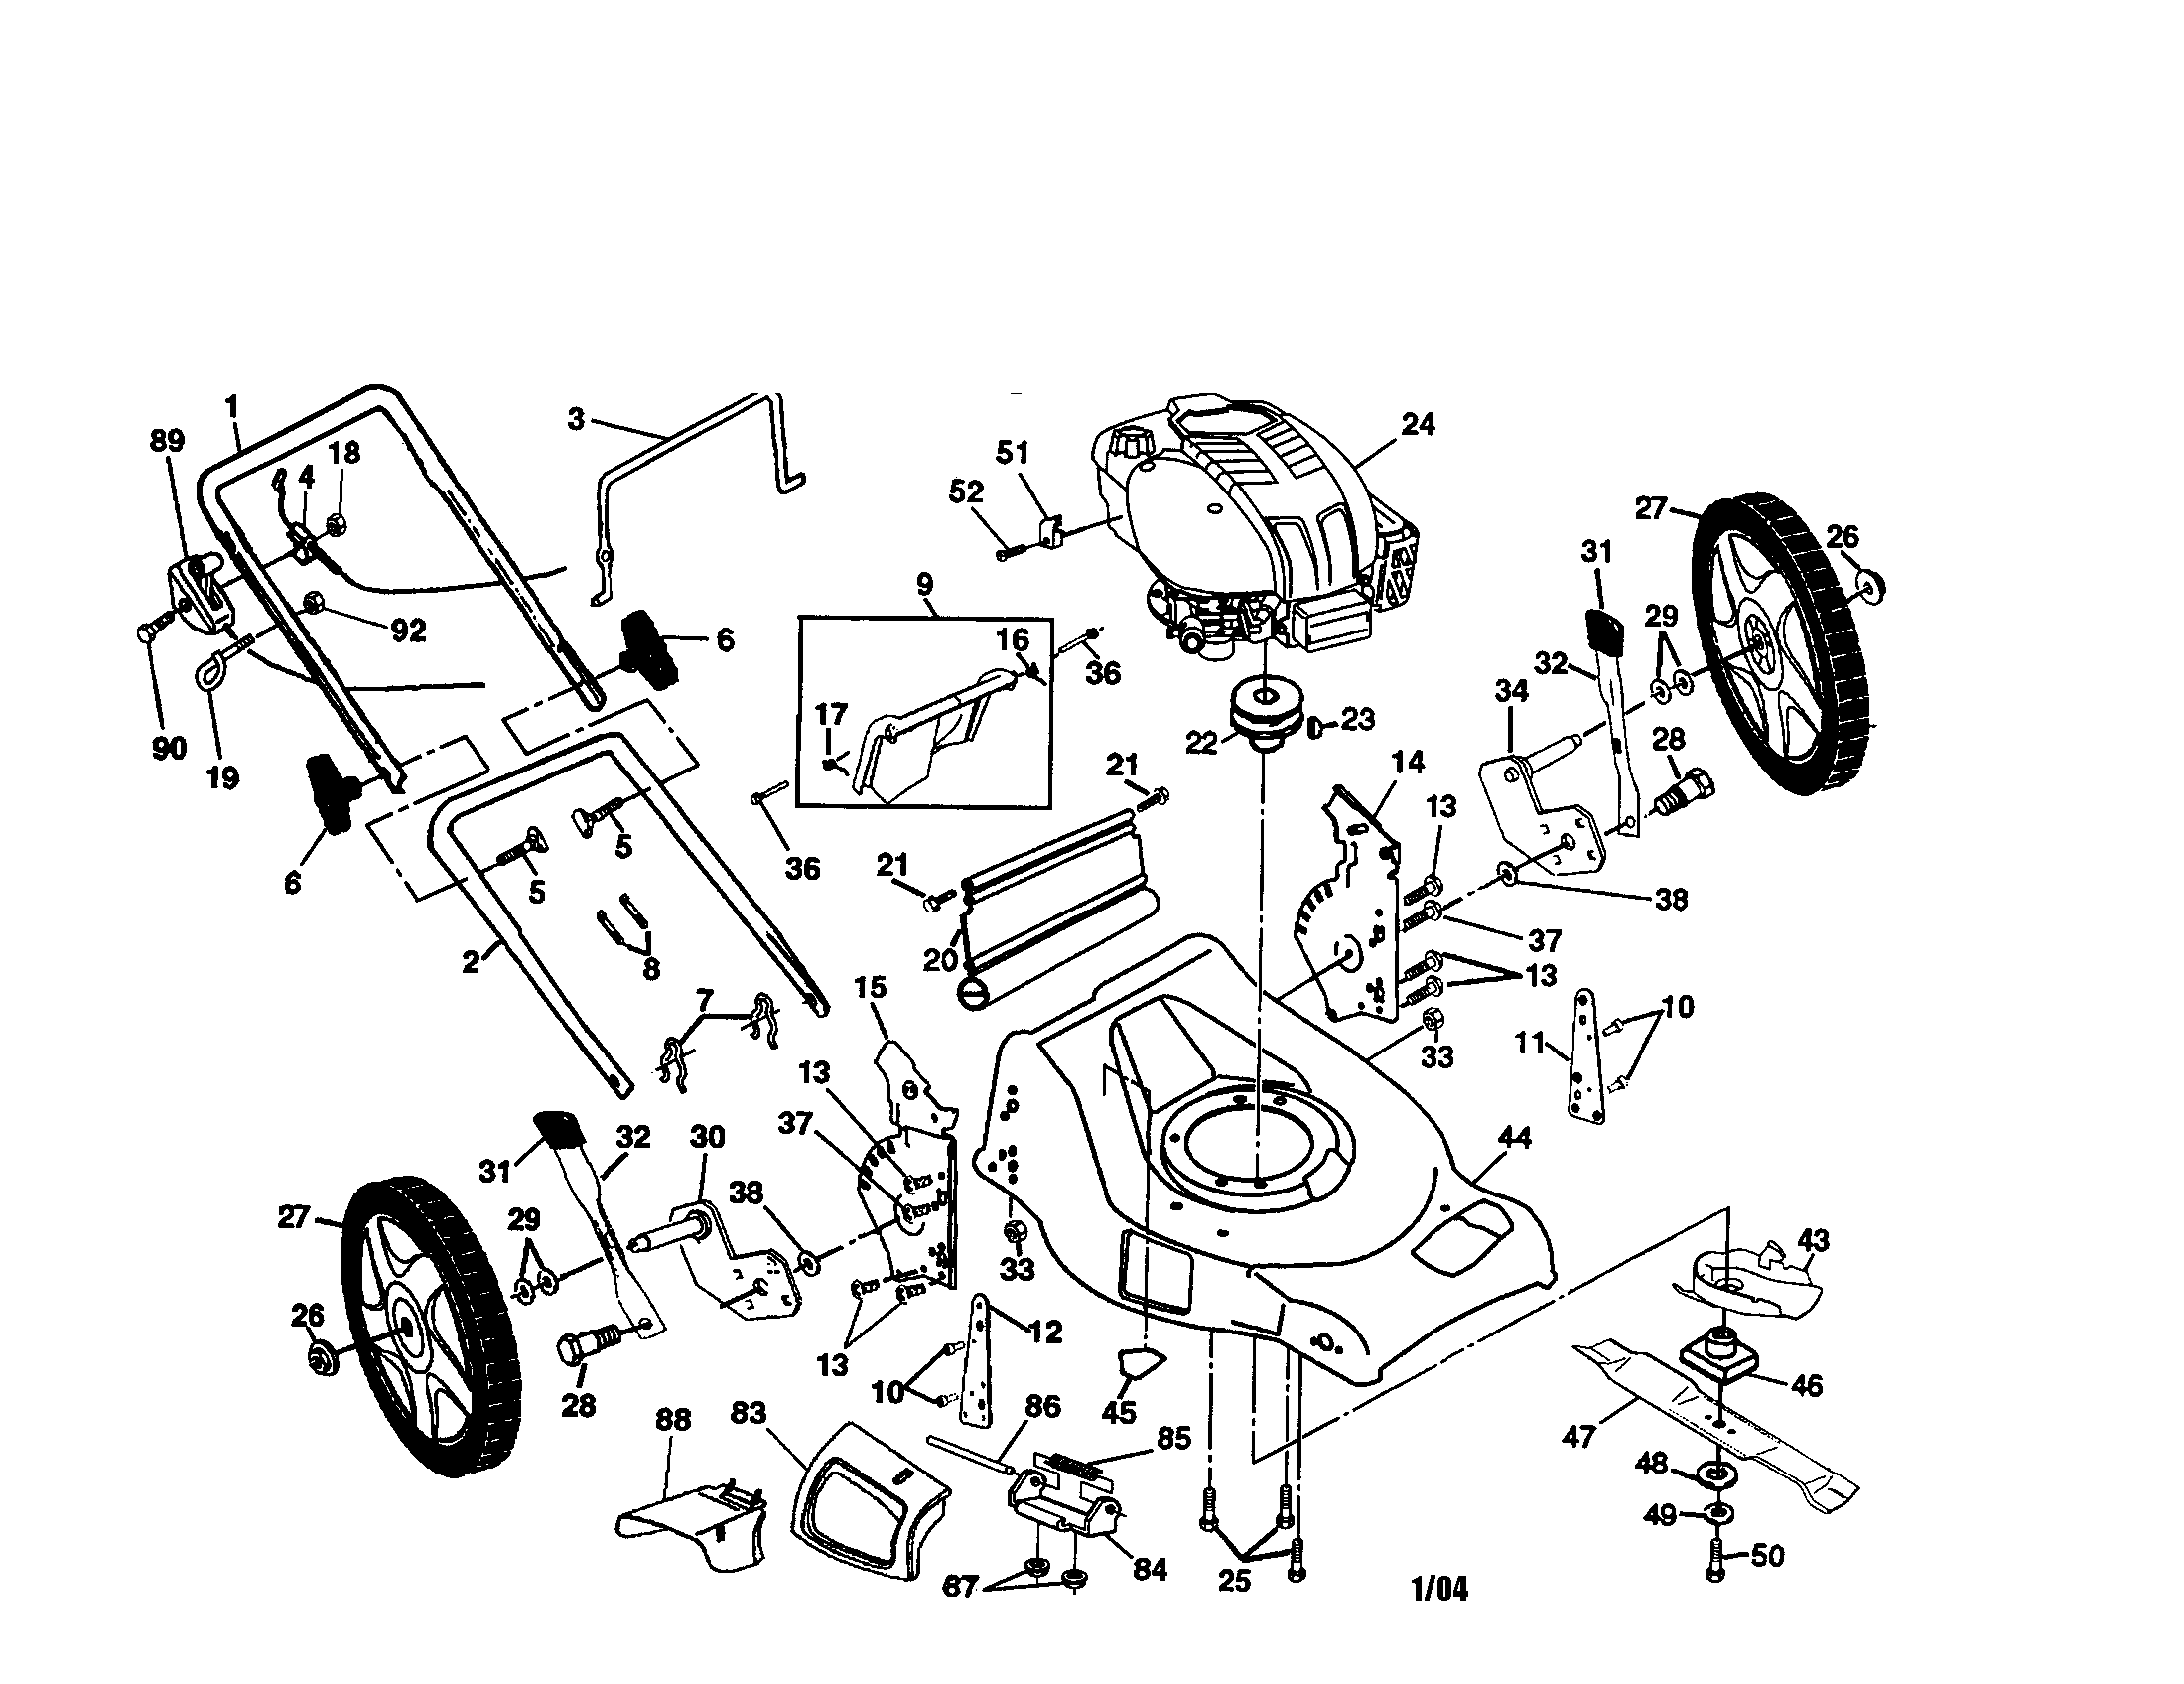 sears lawn tractor parts diagram 1993 ford ranger fuel pump wiring riding mowers get free image